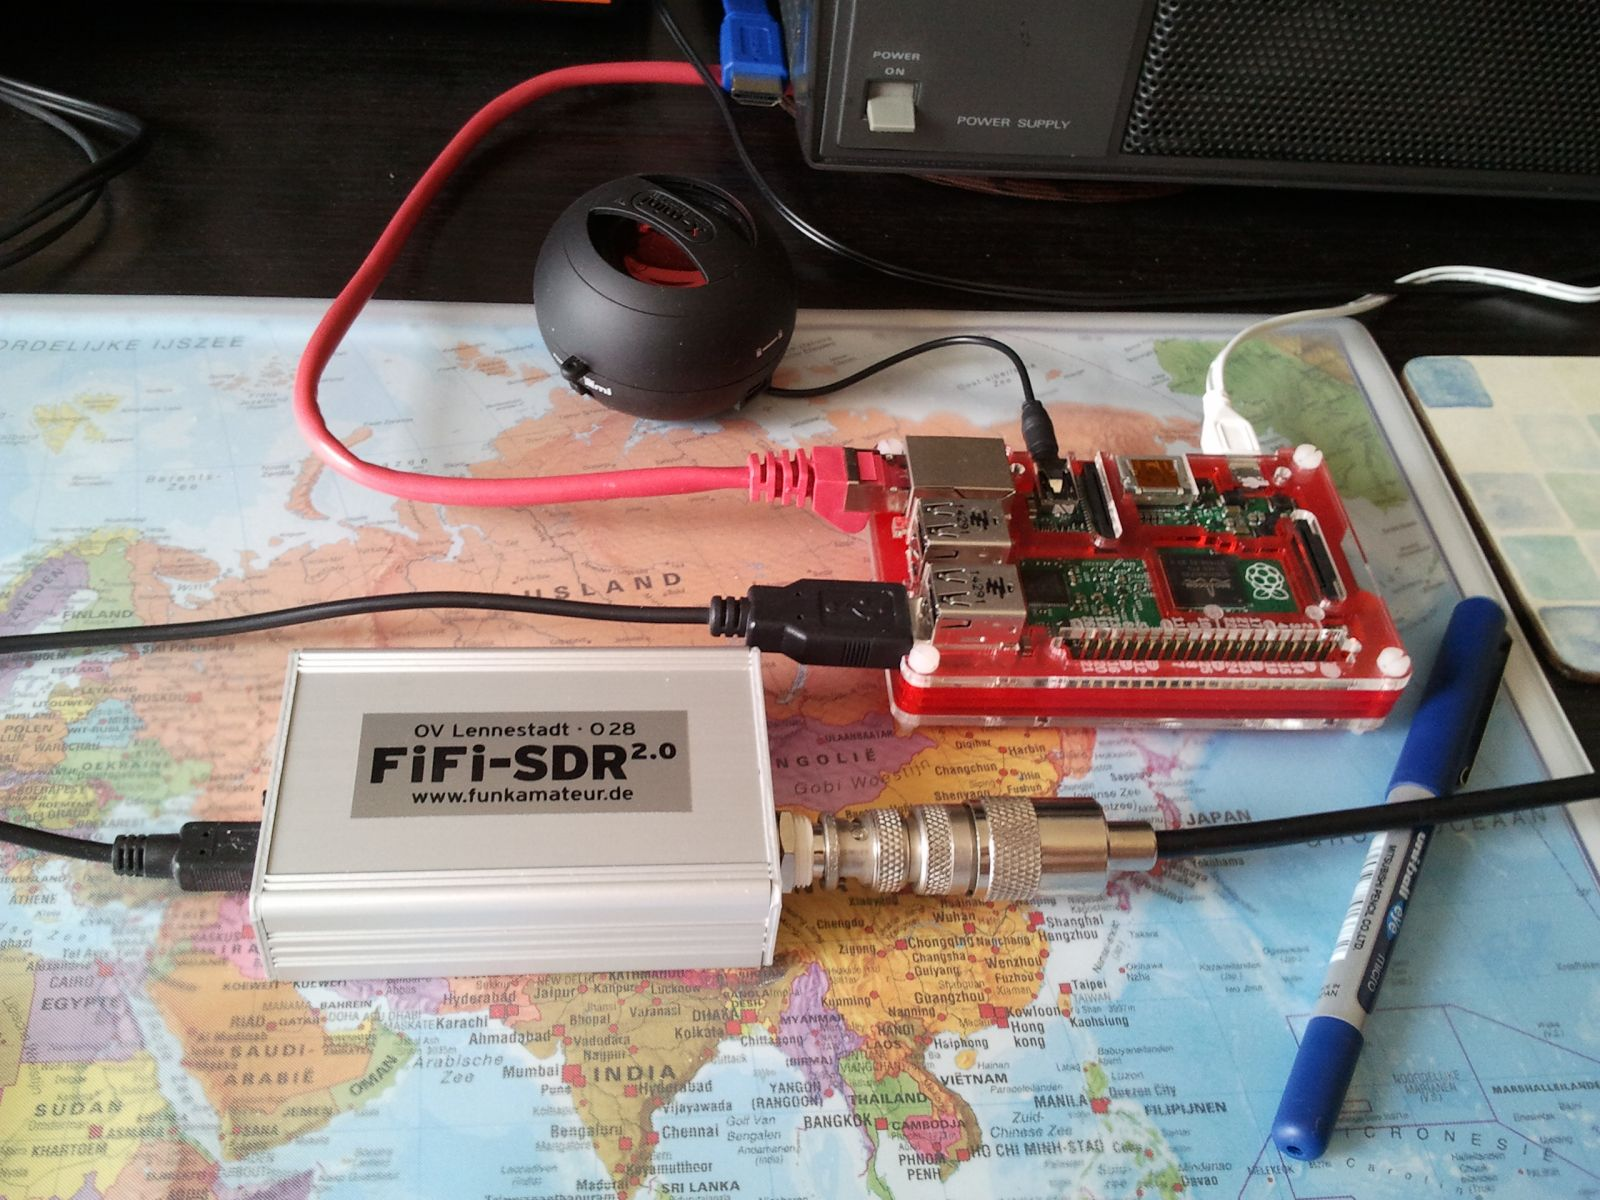 SDR with Raspberry Pi 2 for QRSS and WSPR RX.